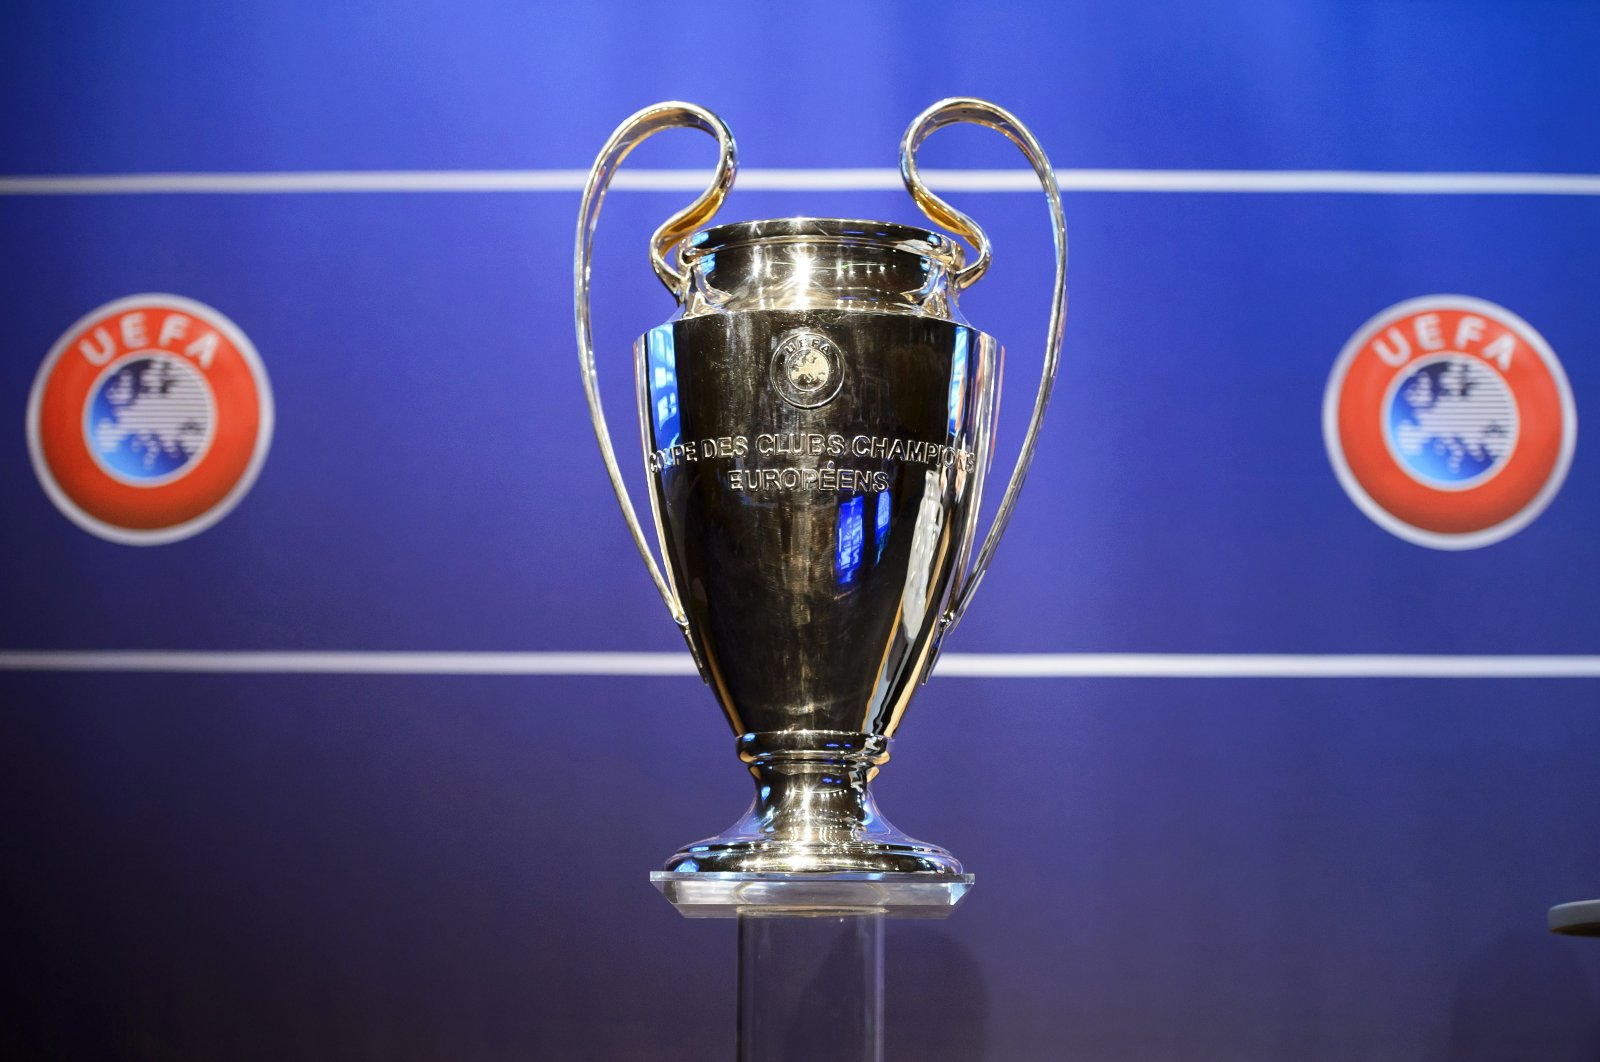 The Champions League trophy on display at the UEFA Headquarters in Nyon, Switzerland, June 23, 2014. (EPA Photo)